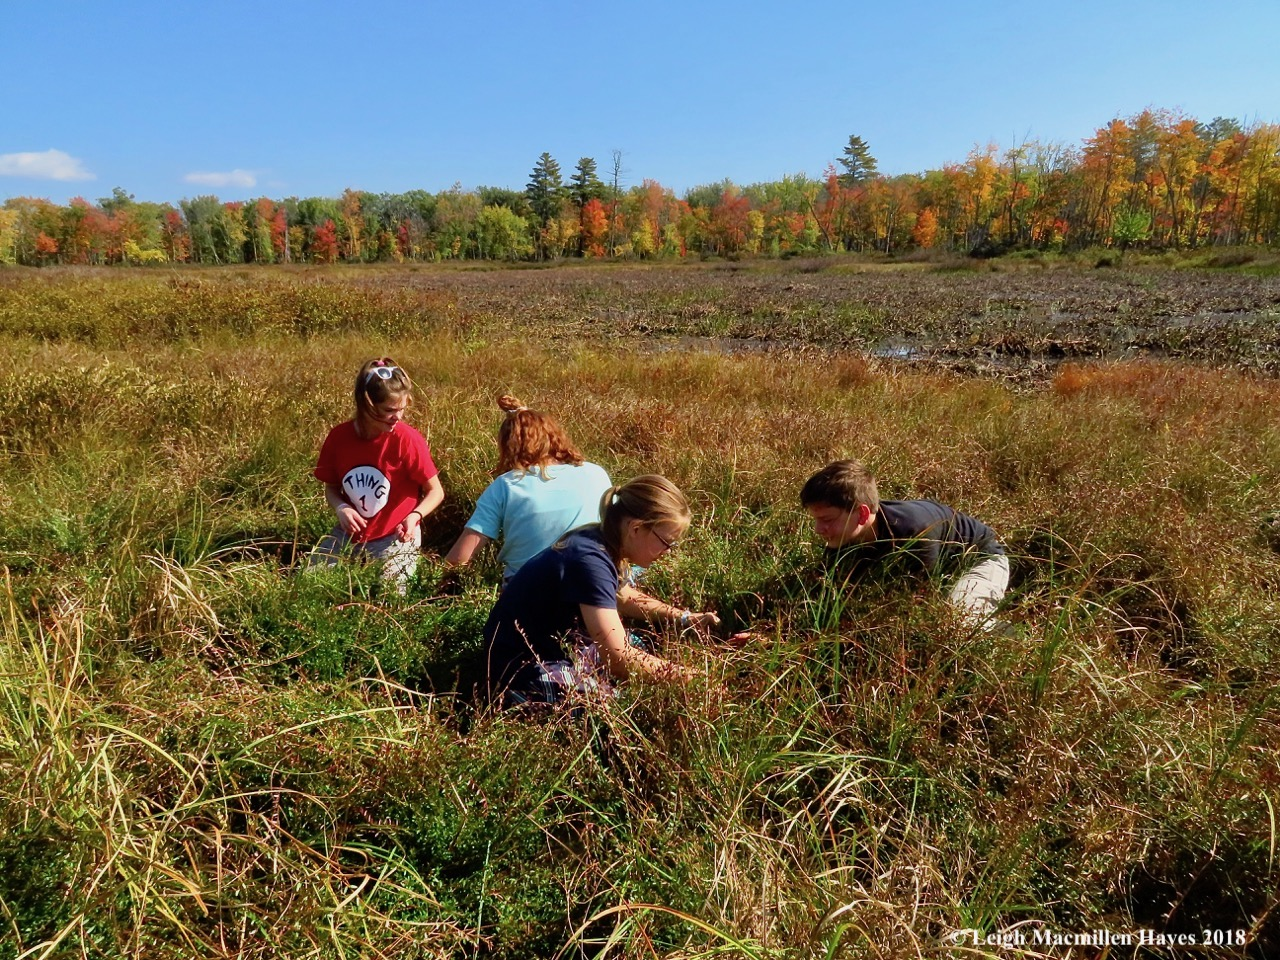 Middle school students from Molly Ockett's MESA program picking cranberries in the GLLT fen